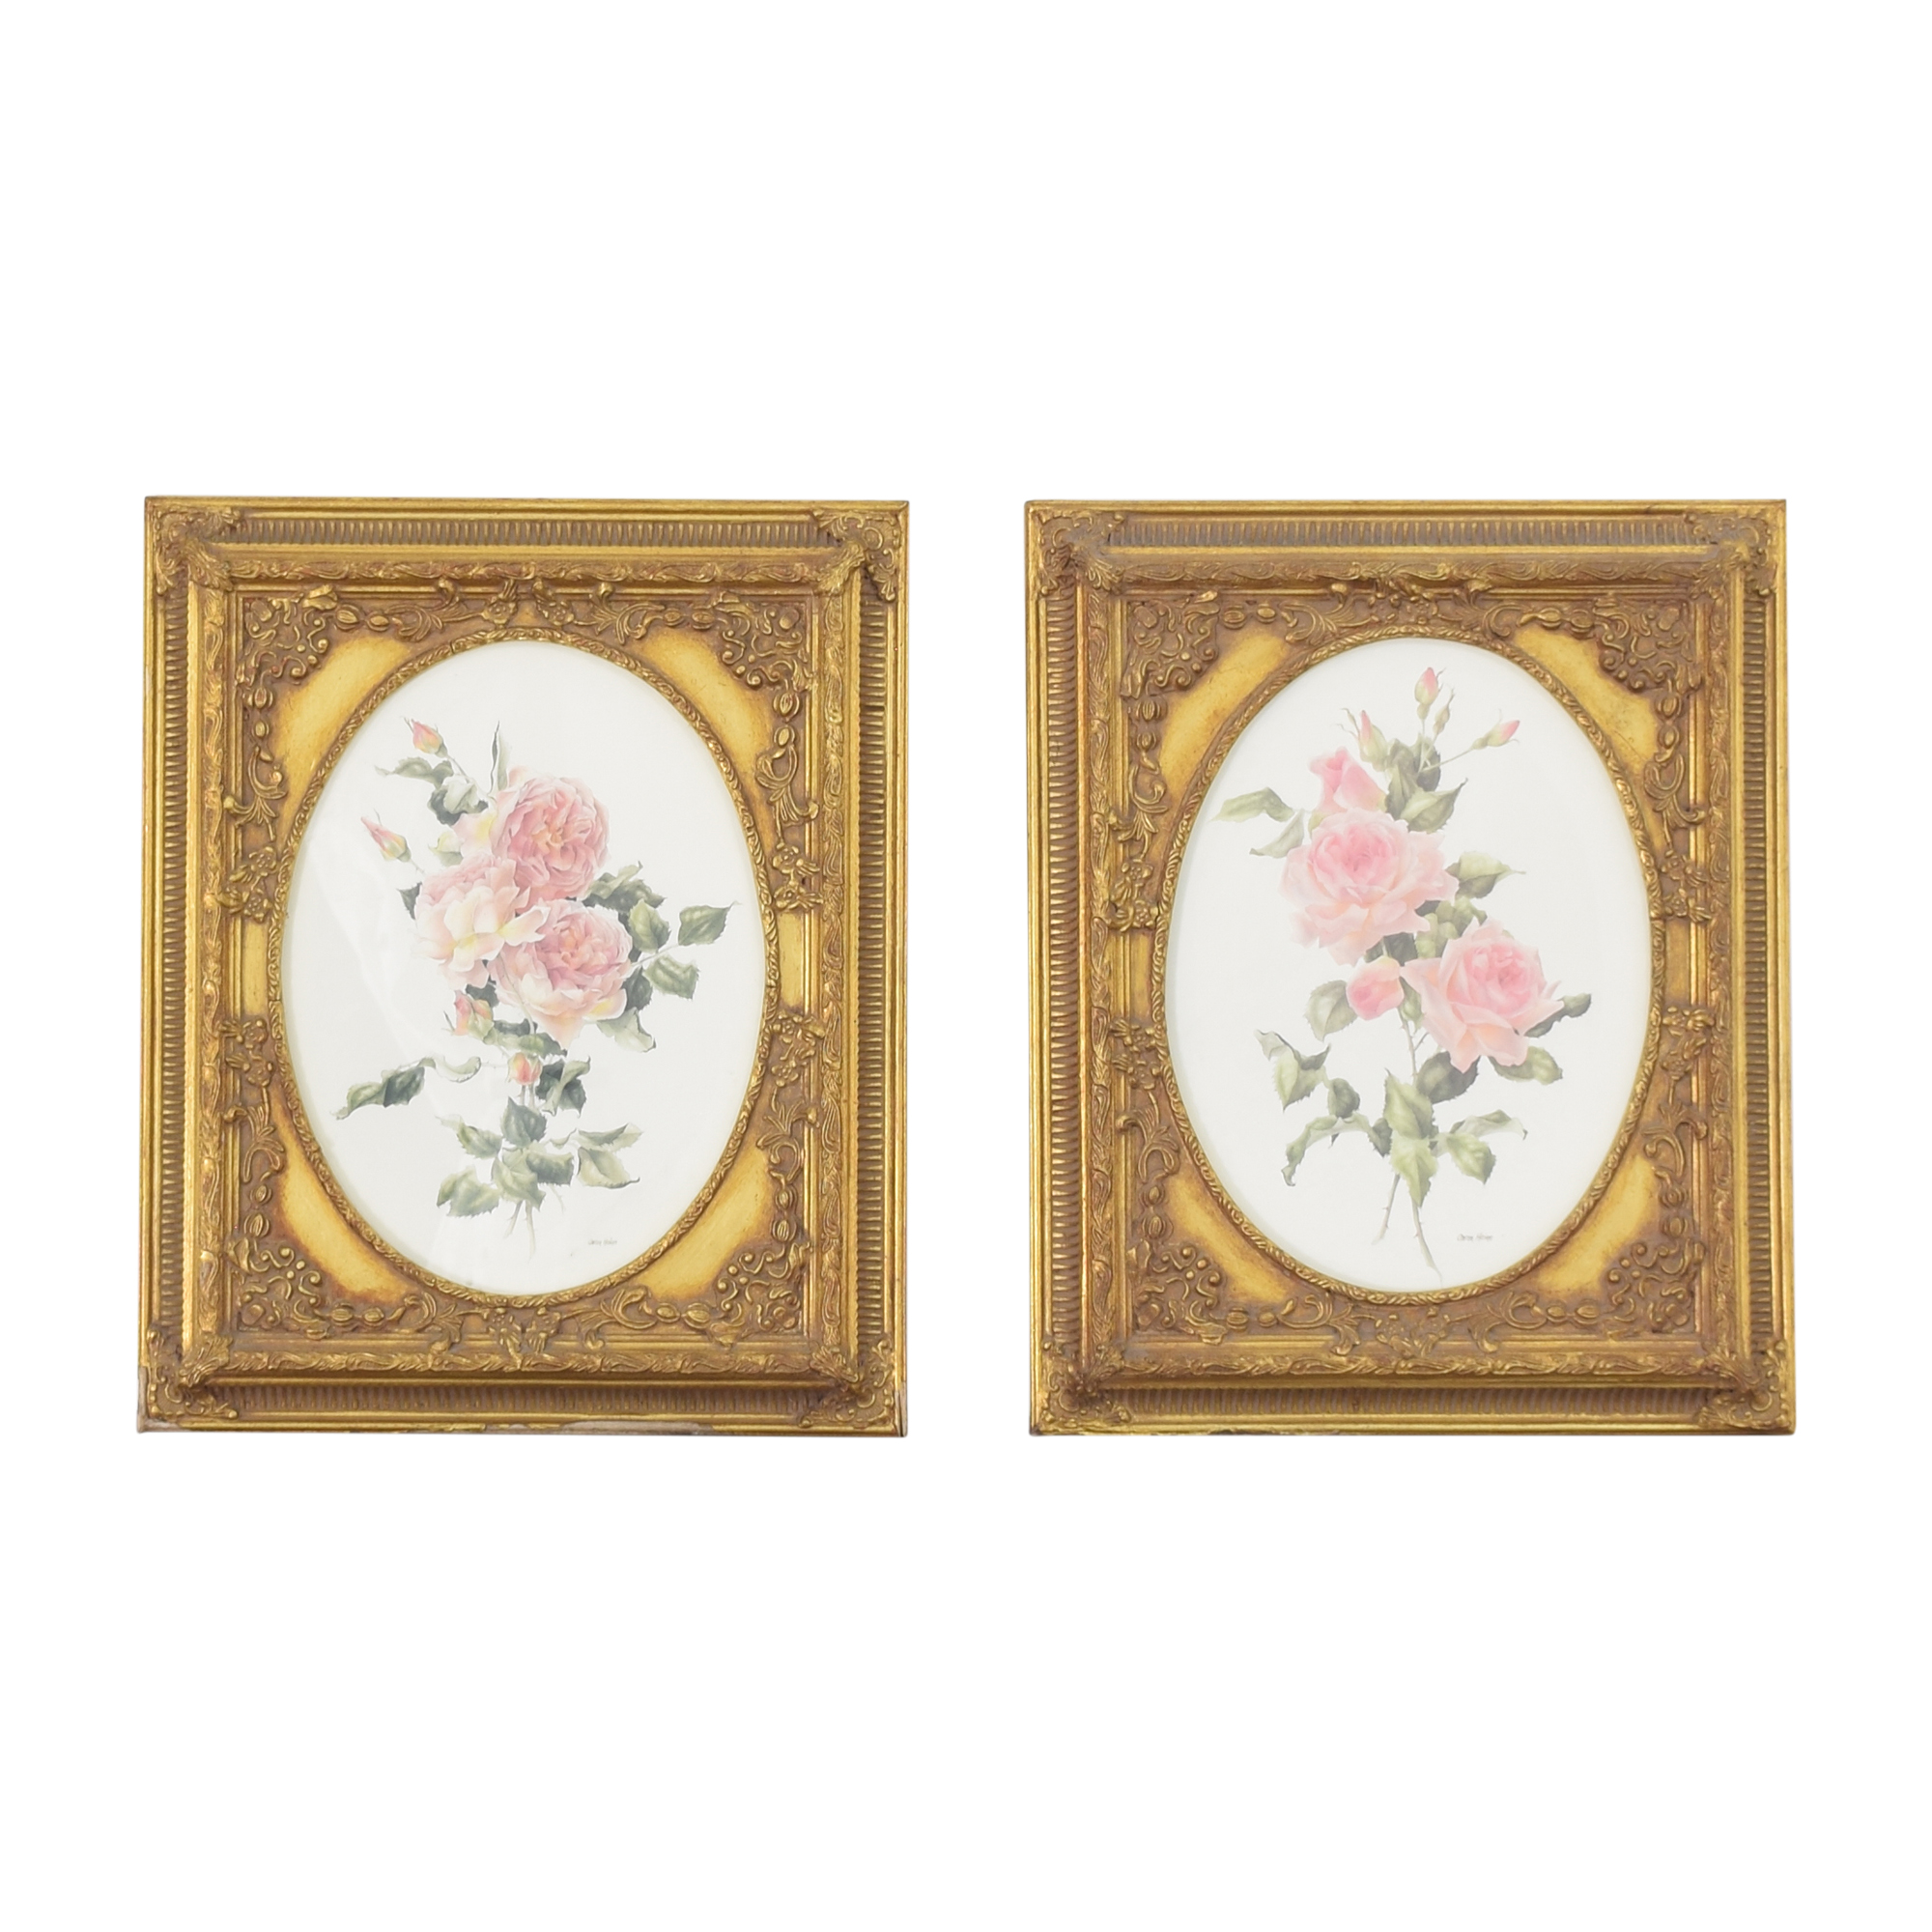 Framed Floral Wall Art Decor